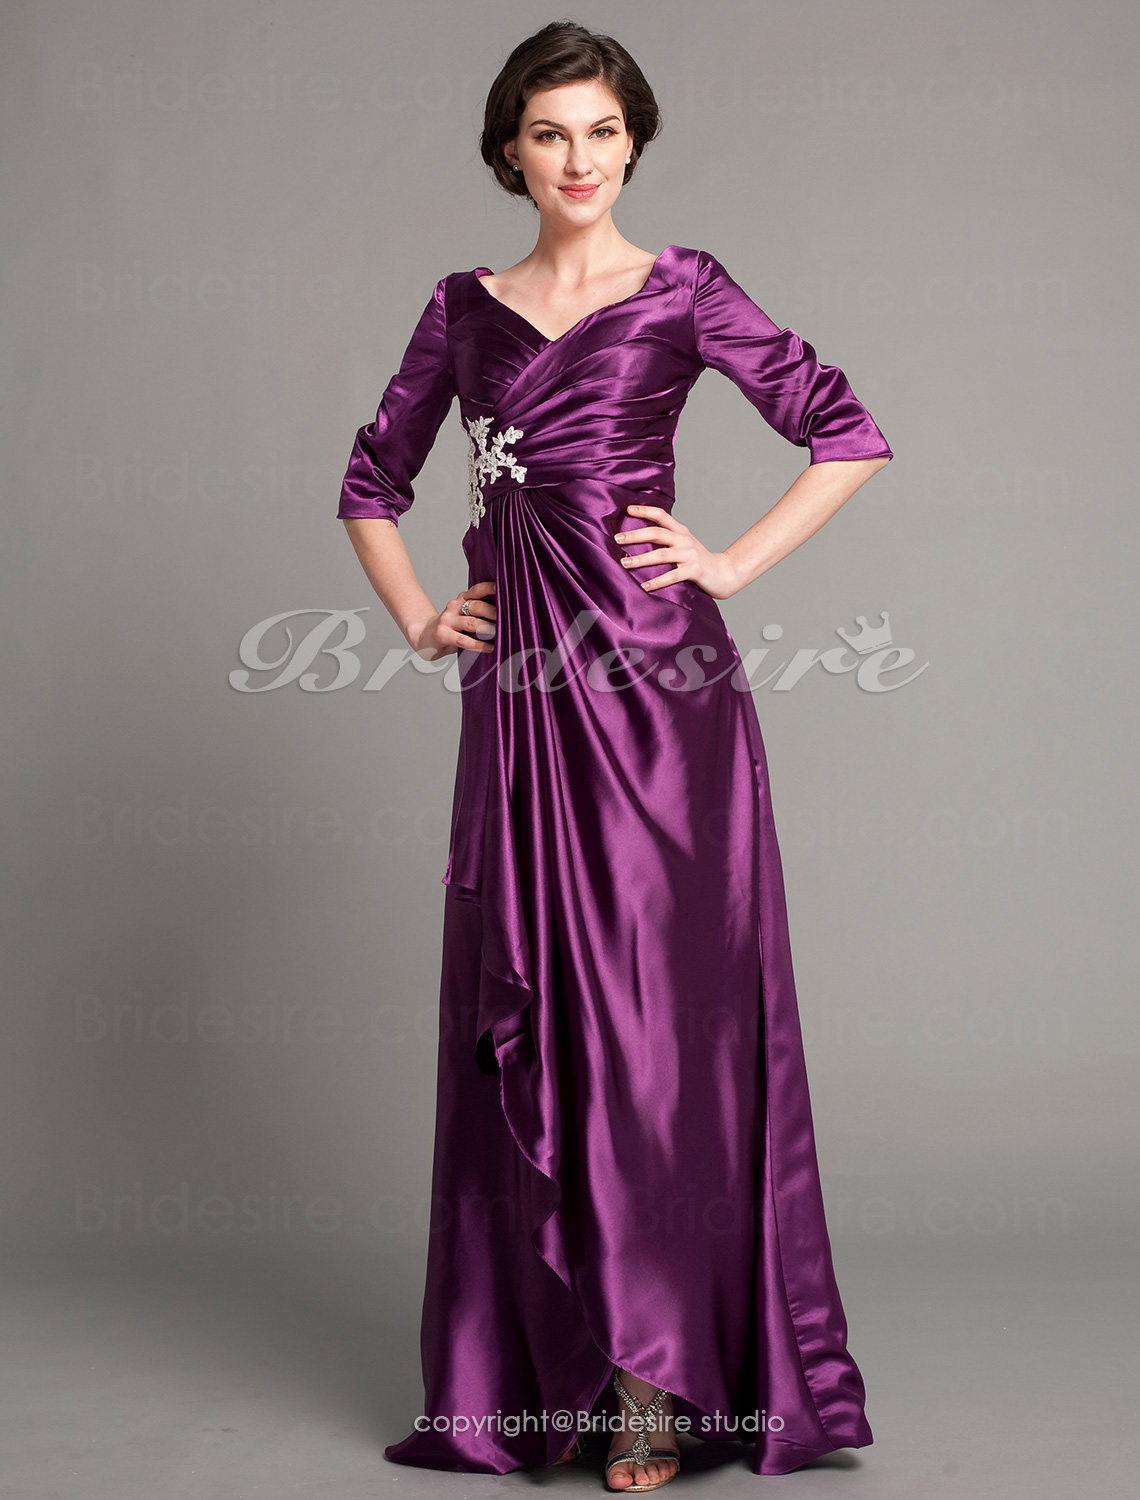 Sheath/Column Satin Chiffon Floor-length V-neck Mother of the Bride Dress